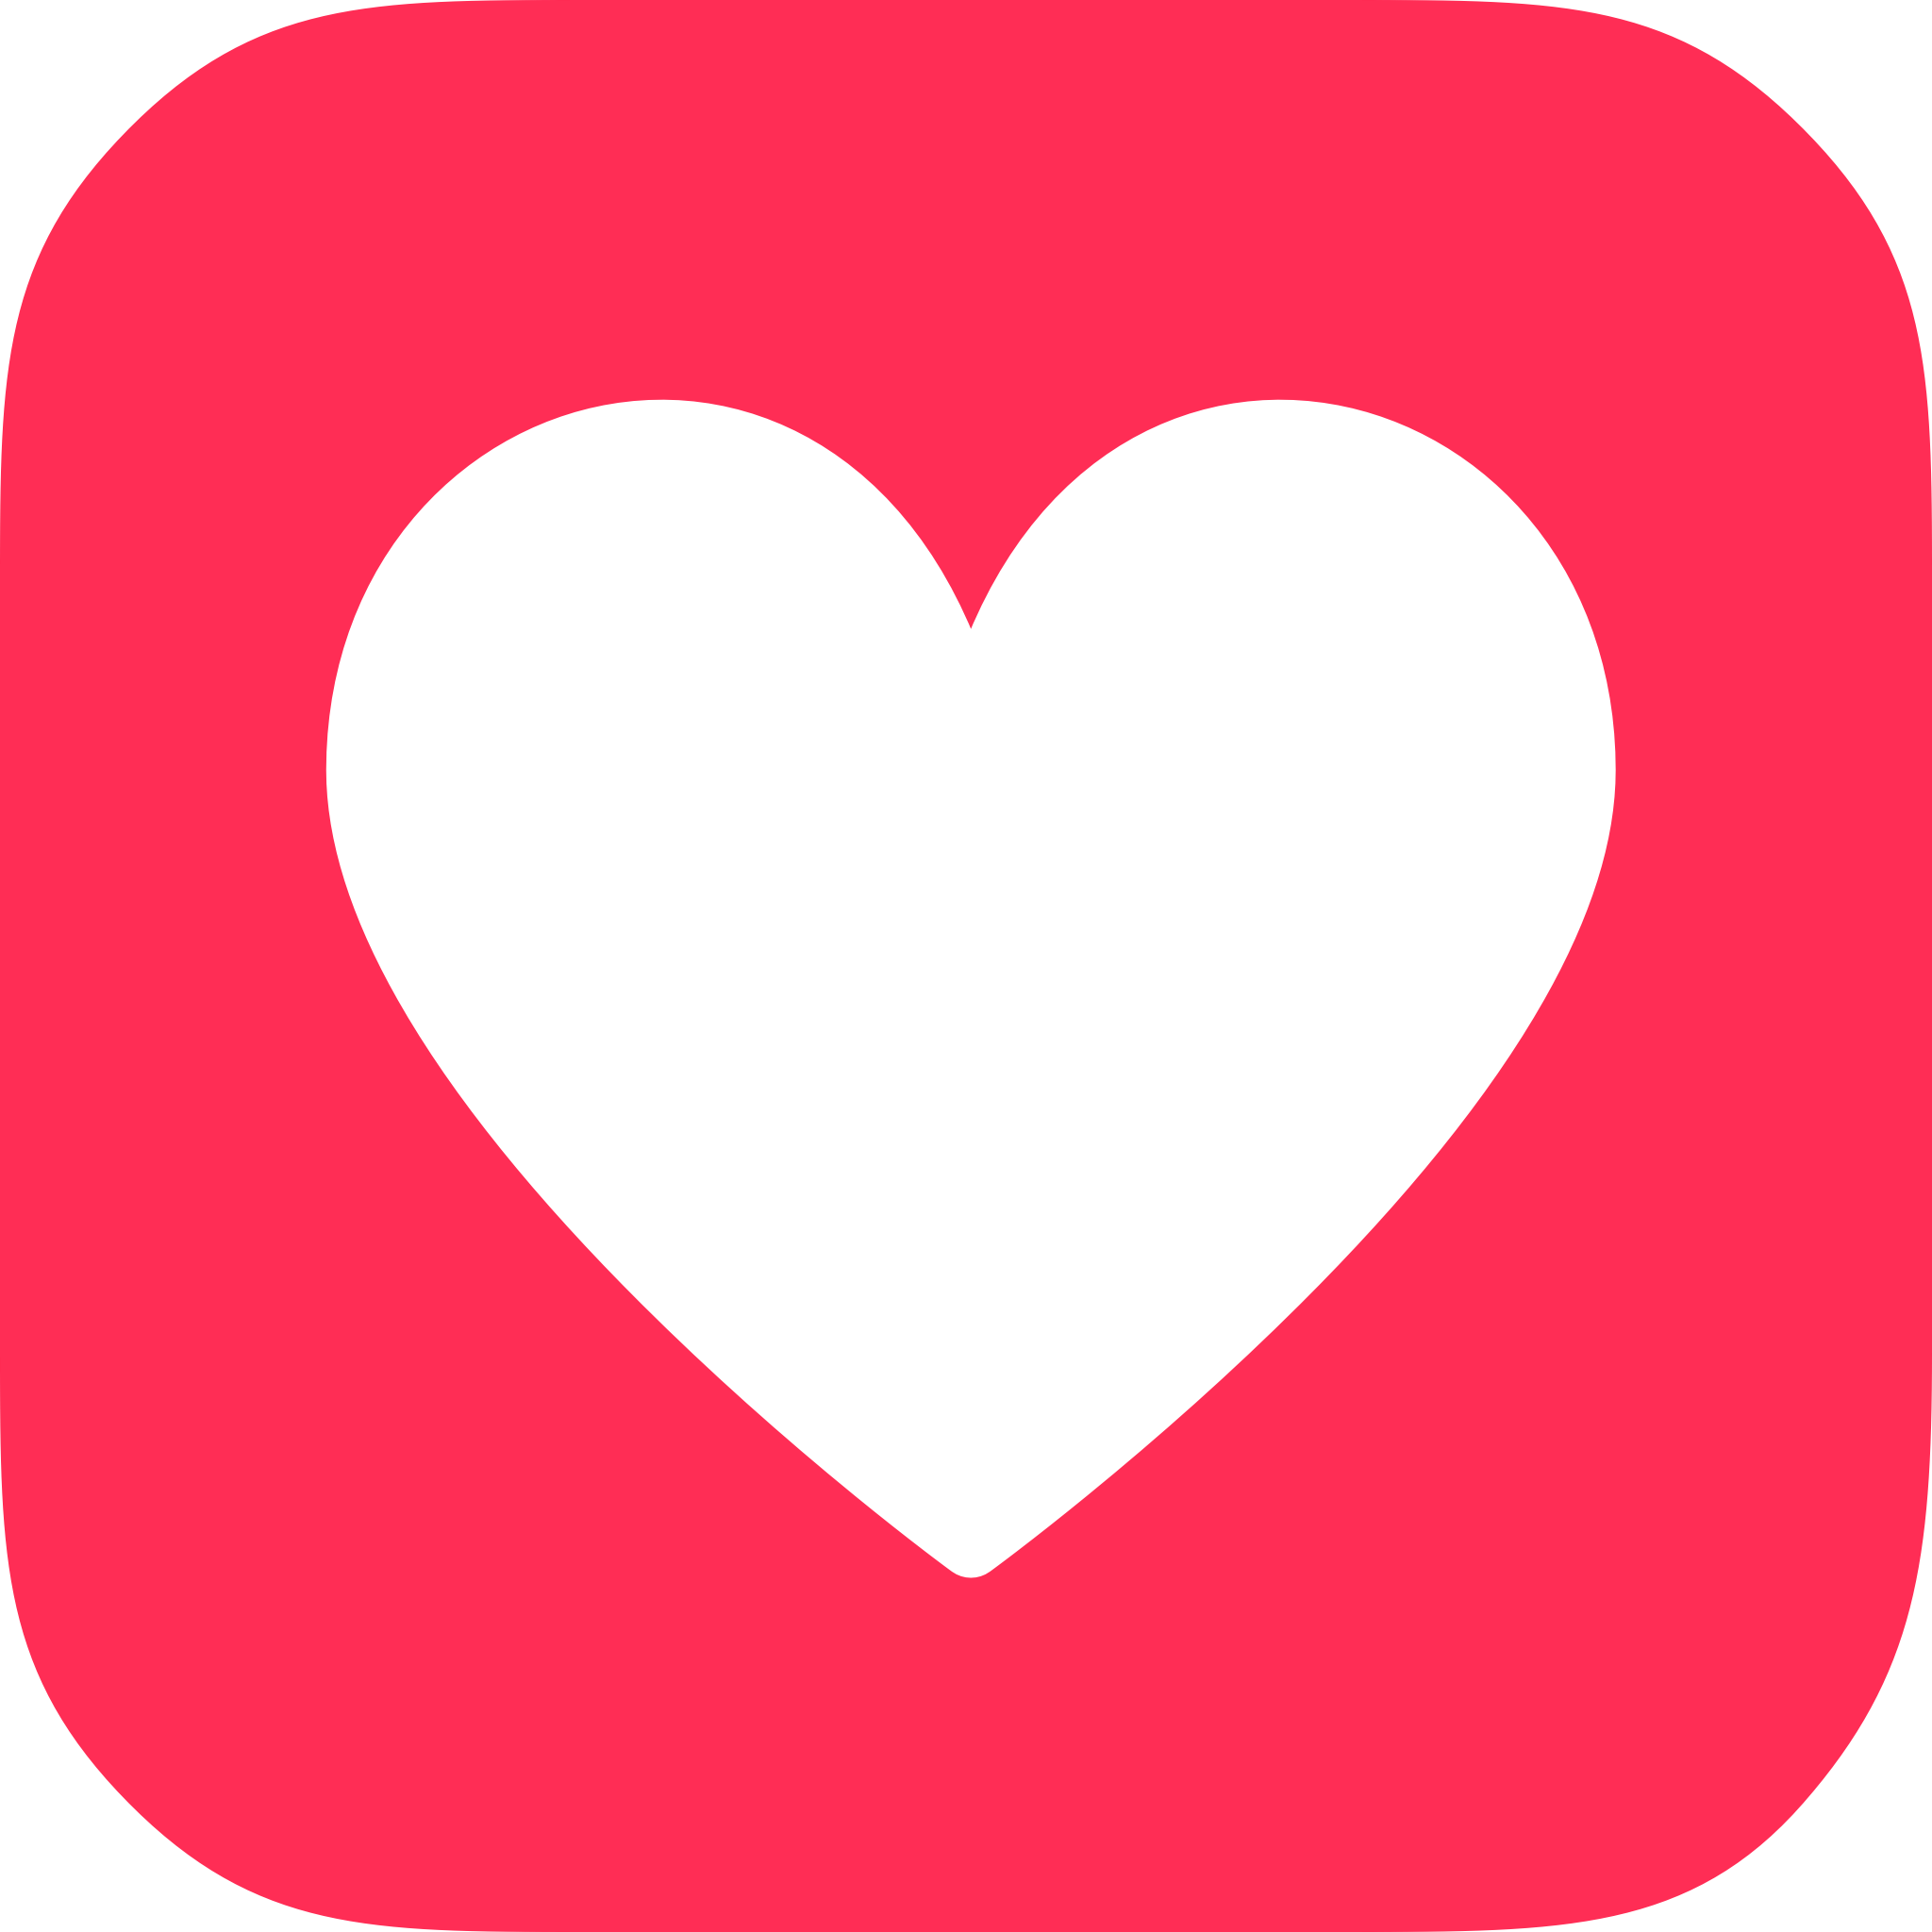 online dating site manila This is a partial, non-exhaustive list of online dating websites contents [hide] 1 online dating services 2 defunct sites 3 references online dating.